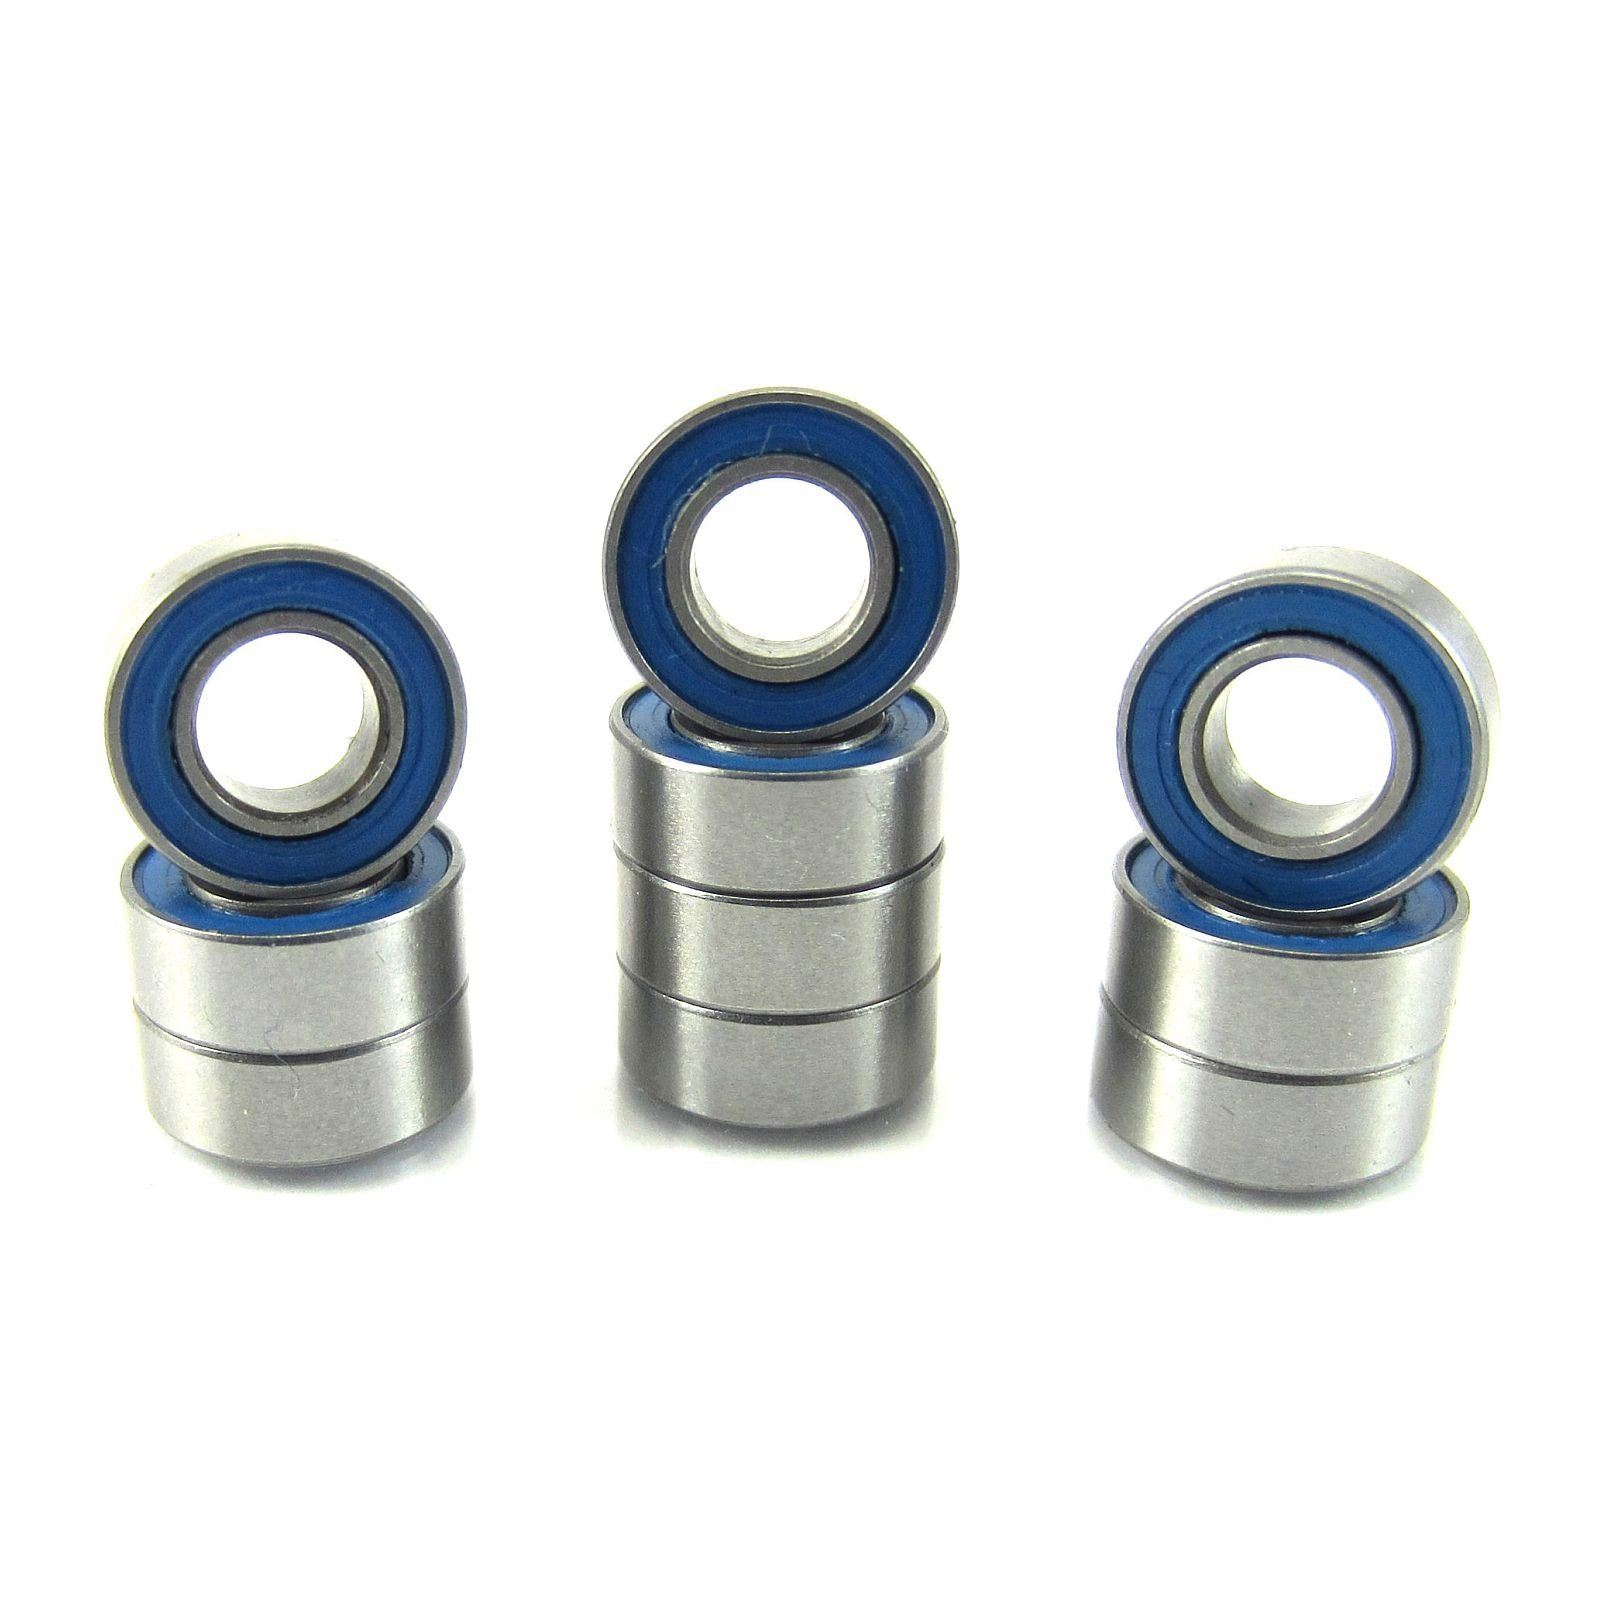 TRB RC 4x8x3mm Precision Ball Bearings ABEC 3 BLU Rubber Sealed (10) - trb-rc-bearings